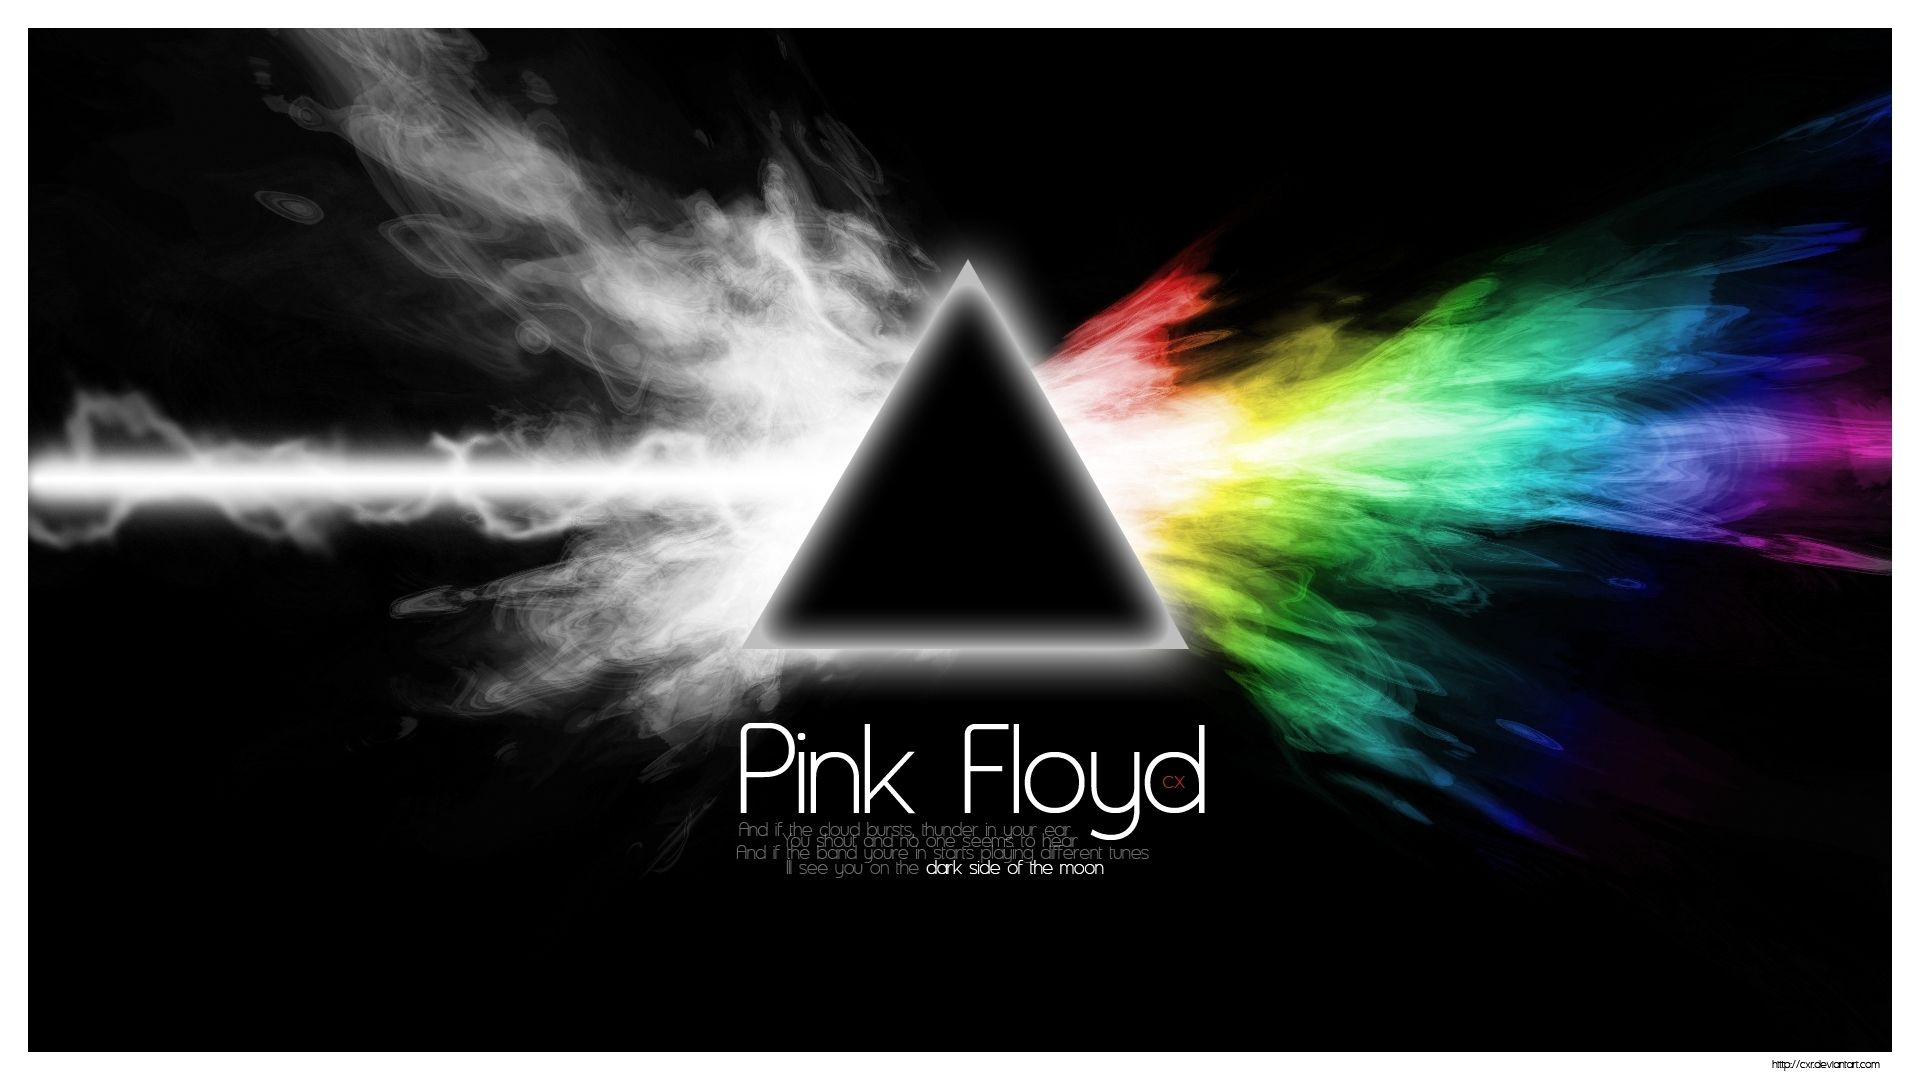 Full Hd 1080p Pink Floyd Wallpapers Hd Desktop Backgrounds